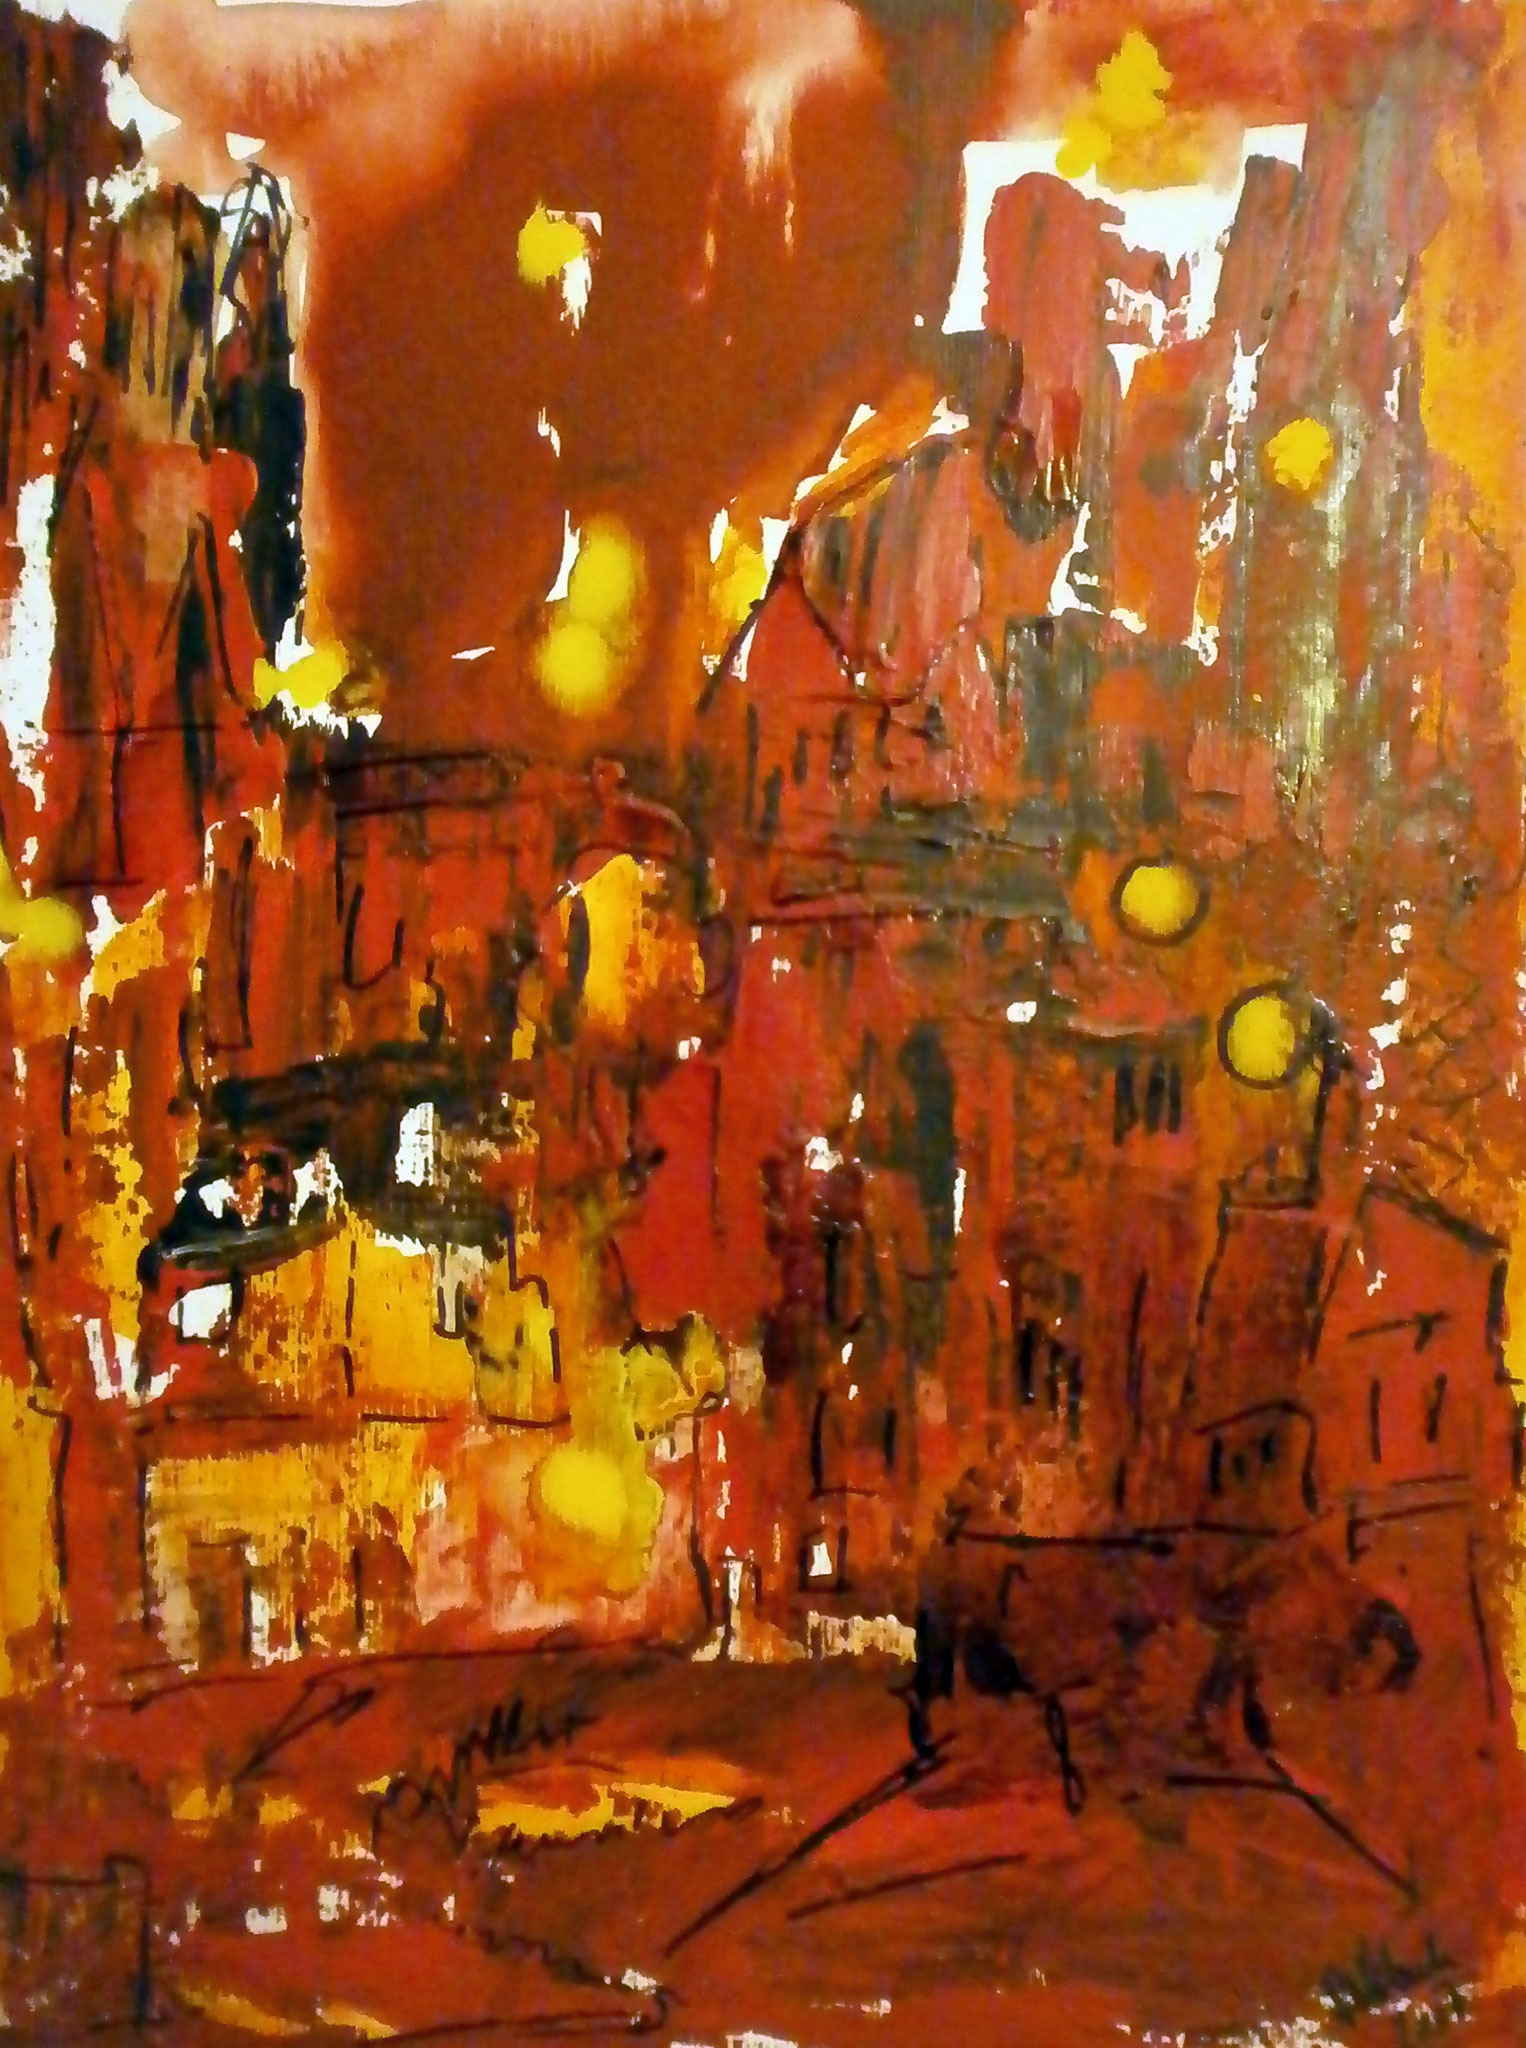 Saturday Night Fever, 30x40, Mischtechnik